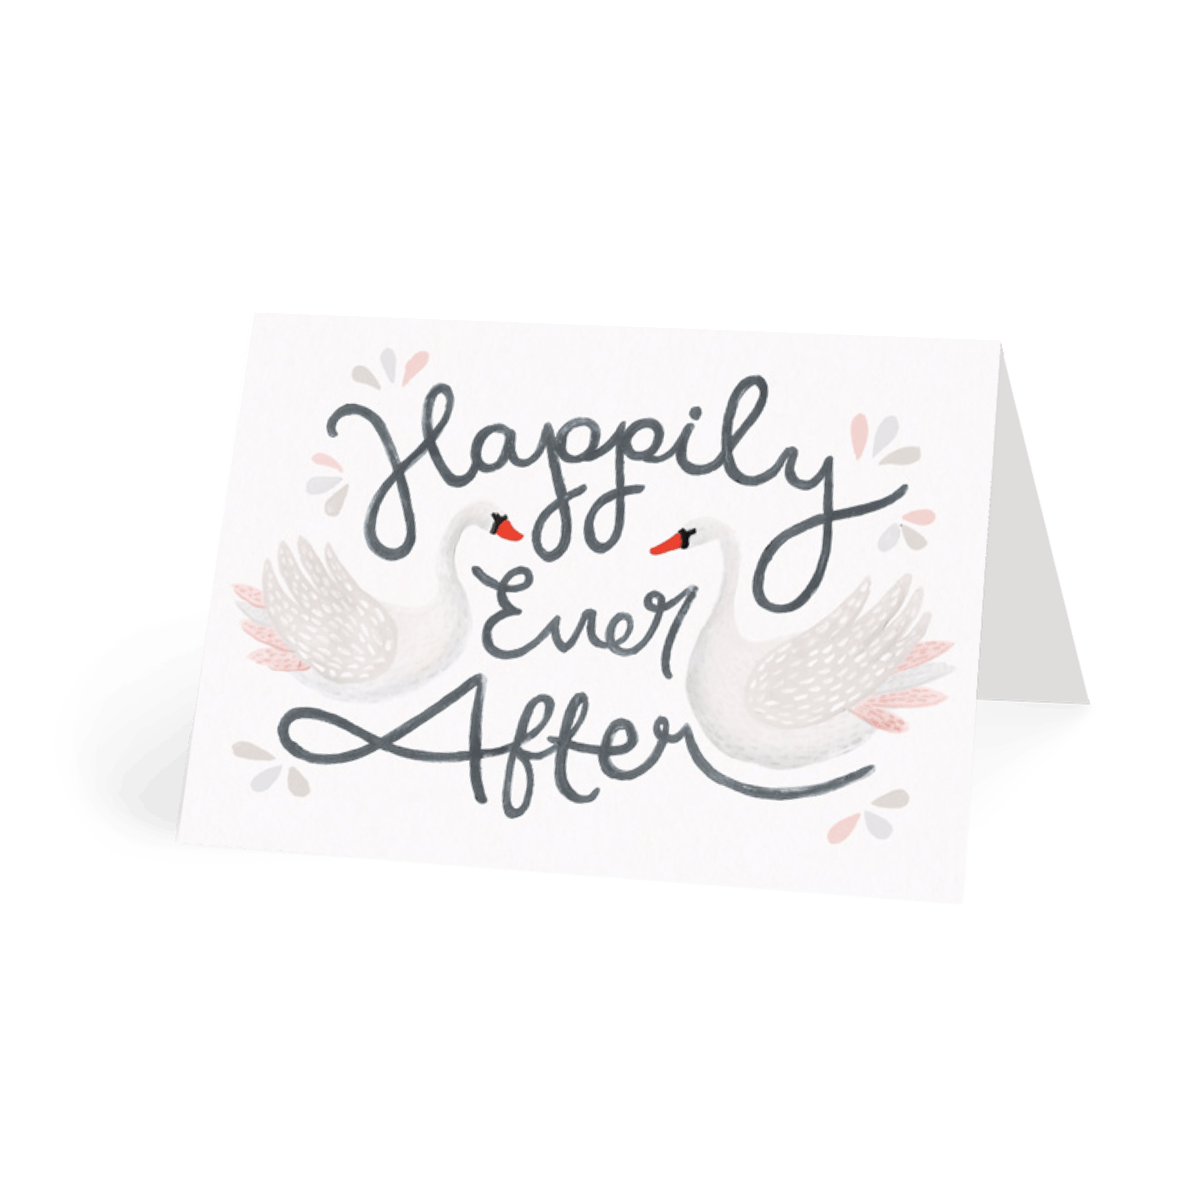 Https%3a%2f%2fwww.papier.com%2fproduct image%2f7729%2f14%2fhappily ever after 1906 front 1464862428.png?ixlib=rb 1.1